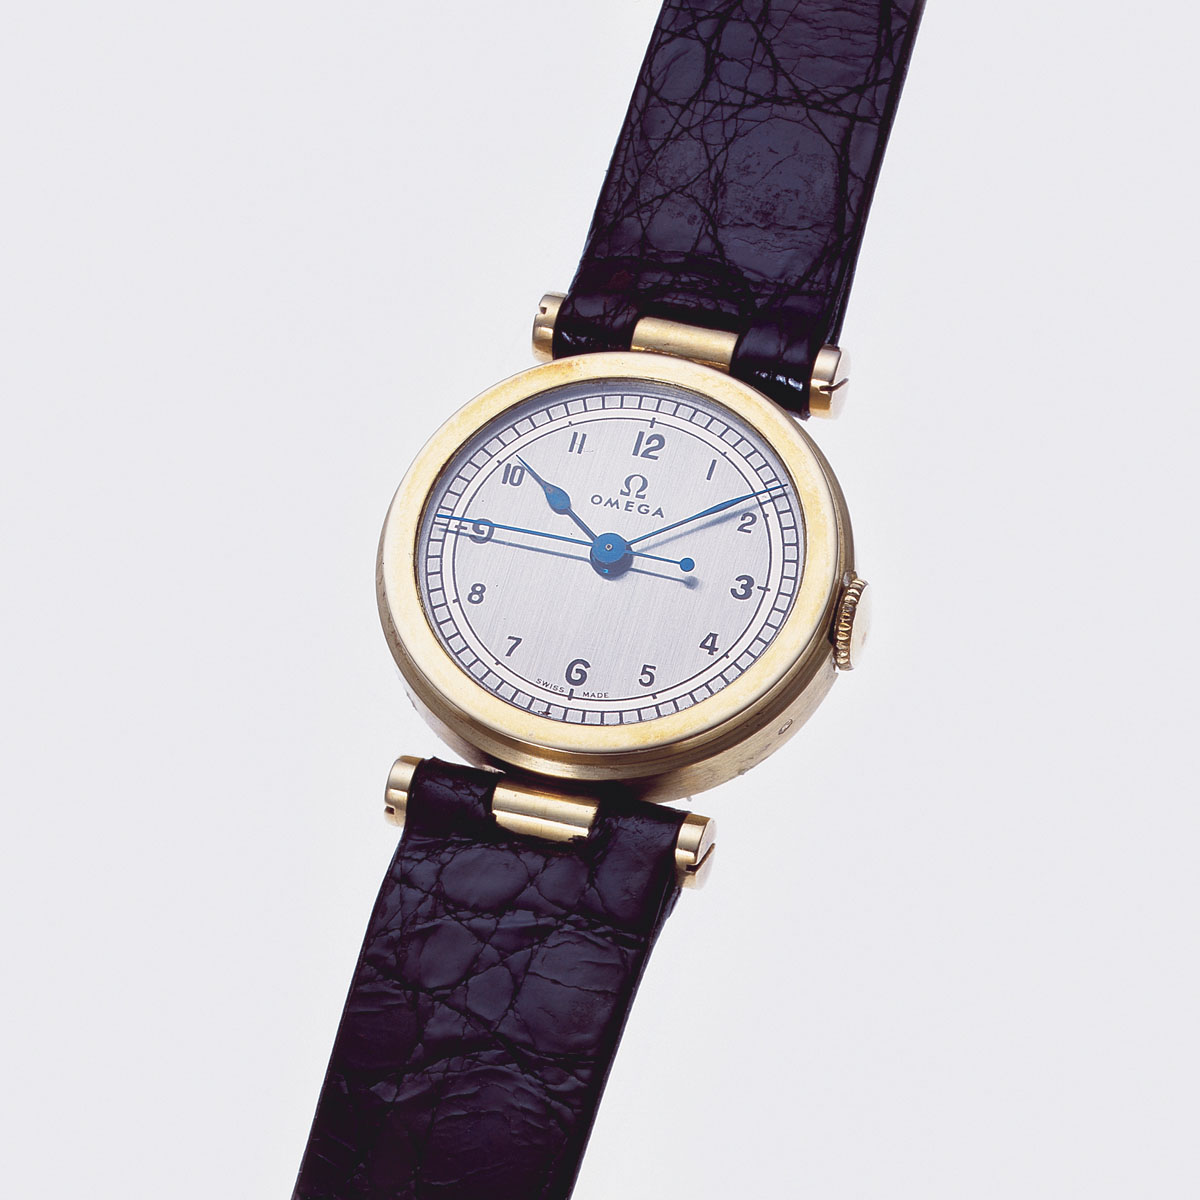 The OMEGA Medicus wristwatch